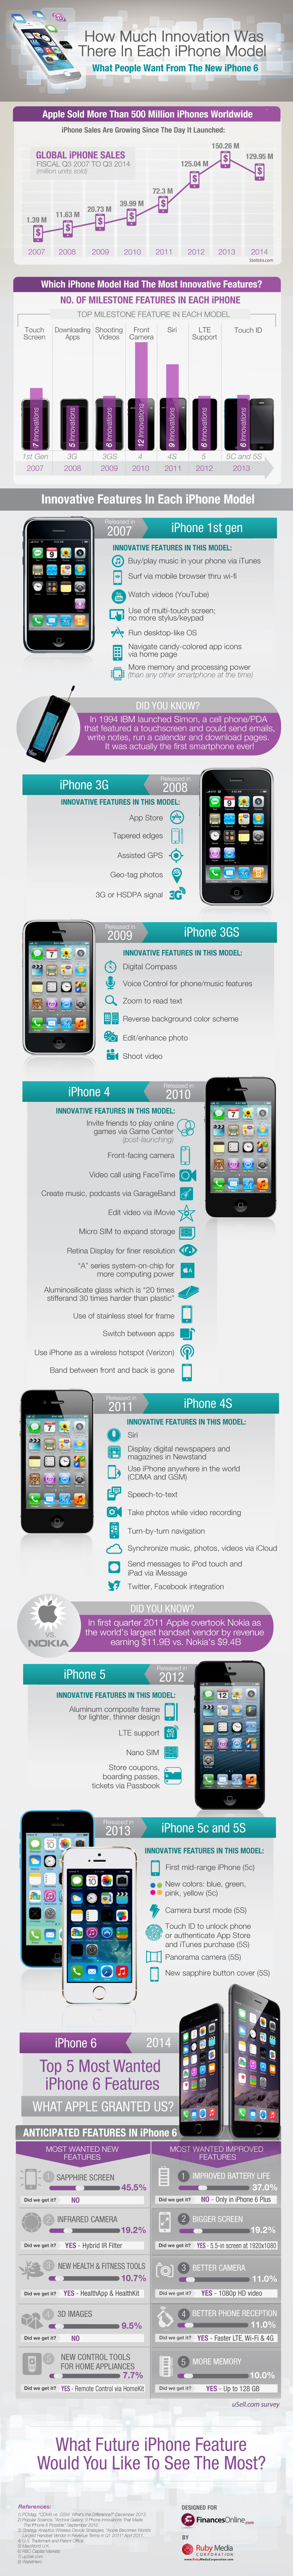 iphone model comparison